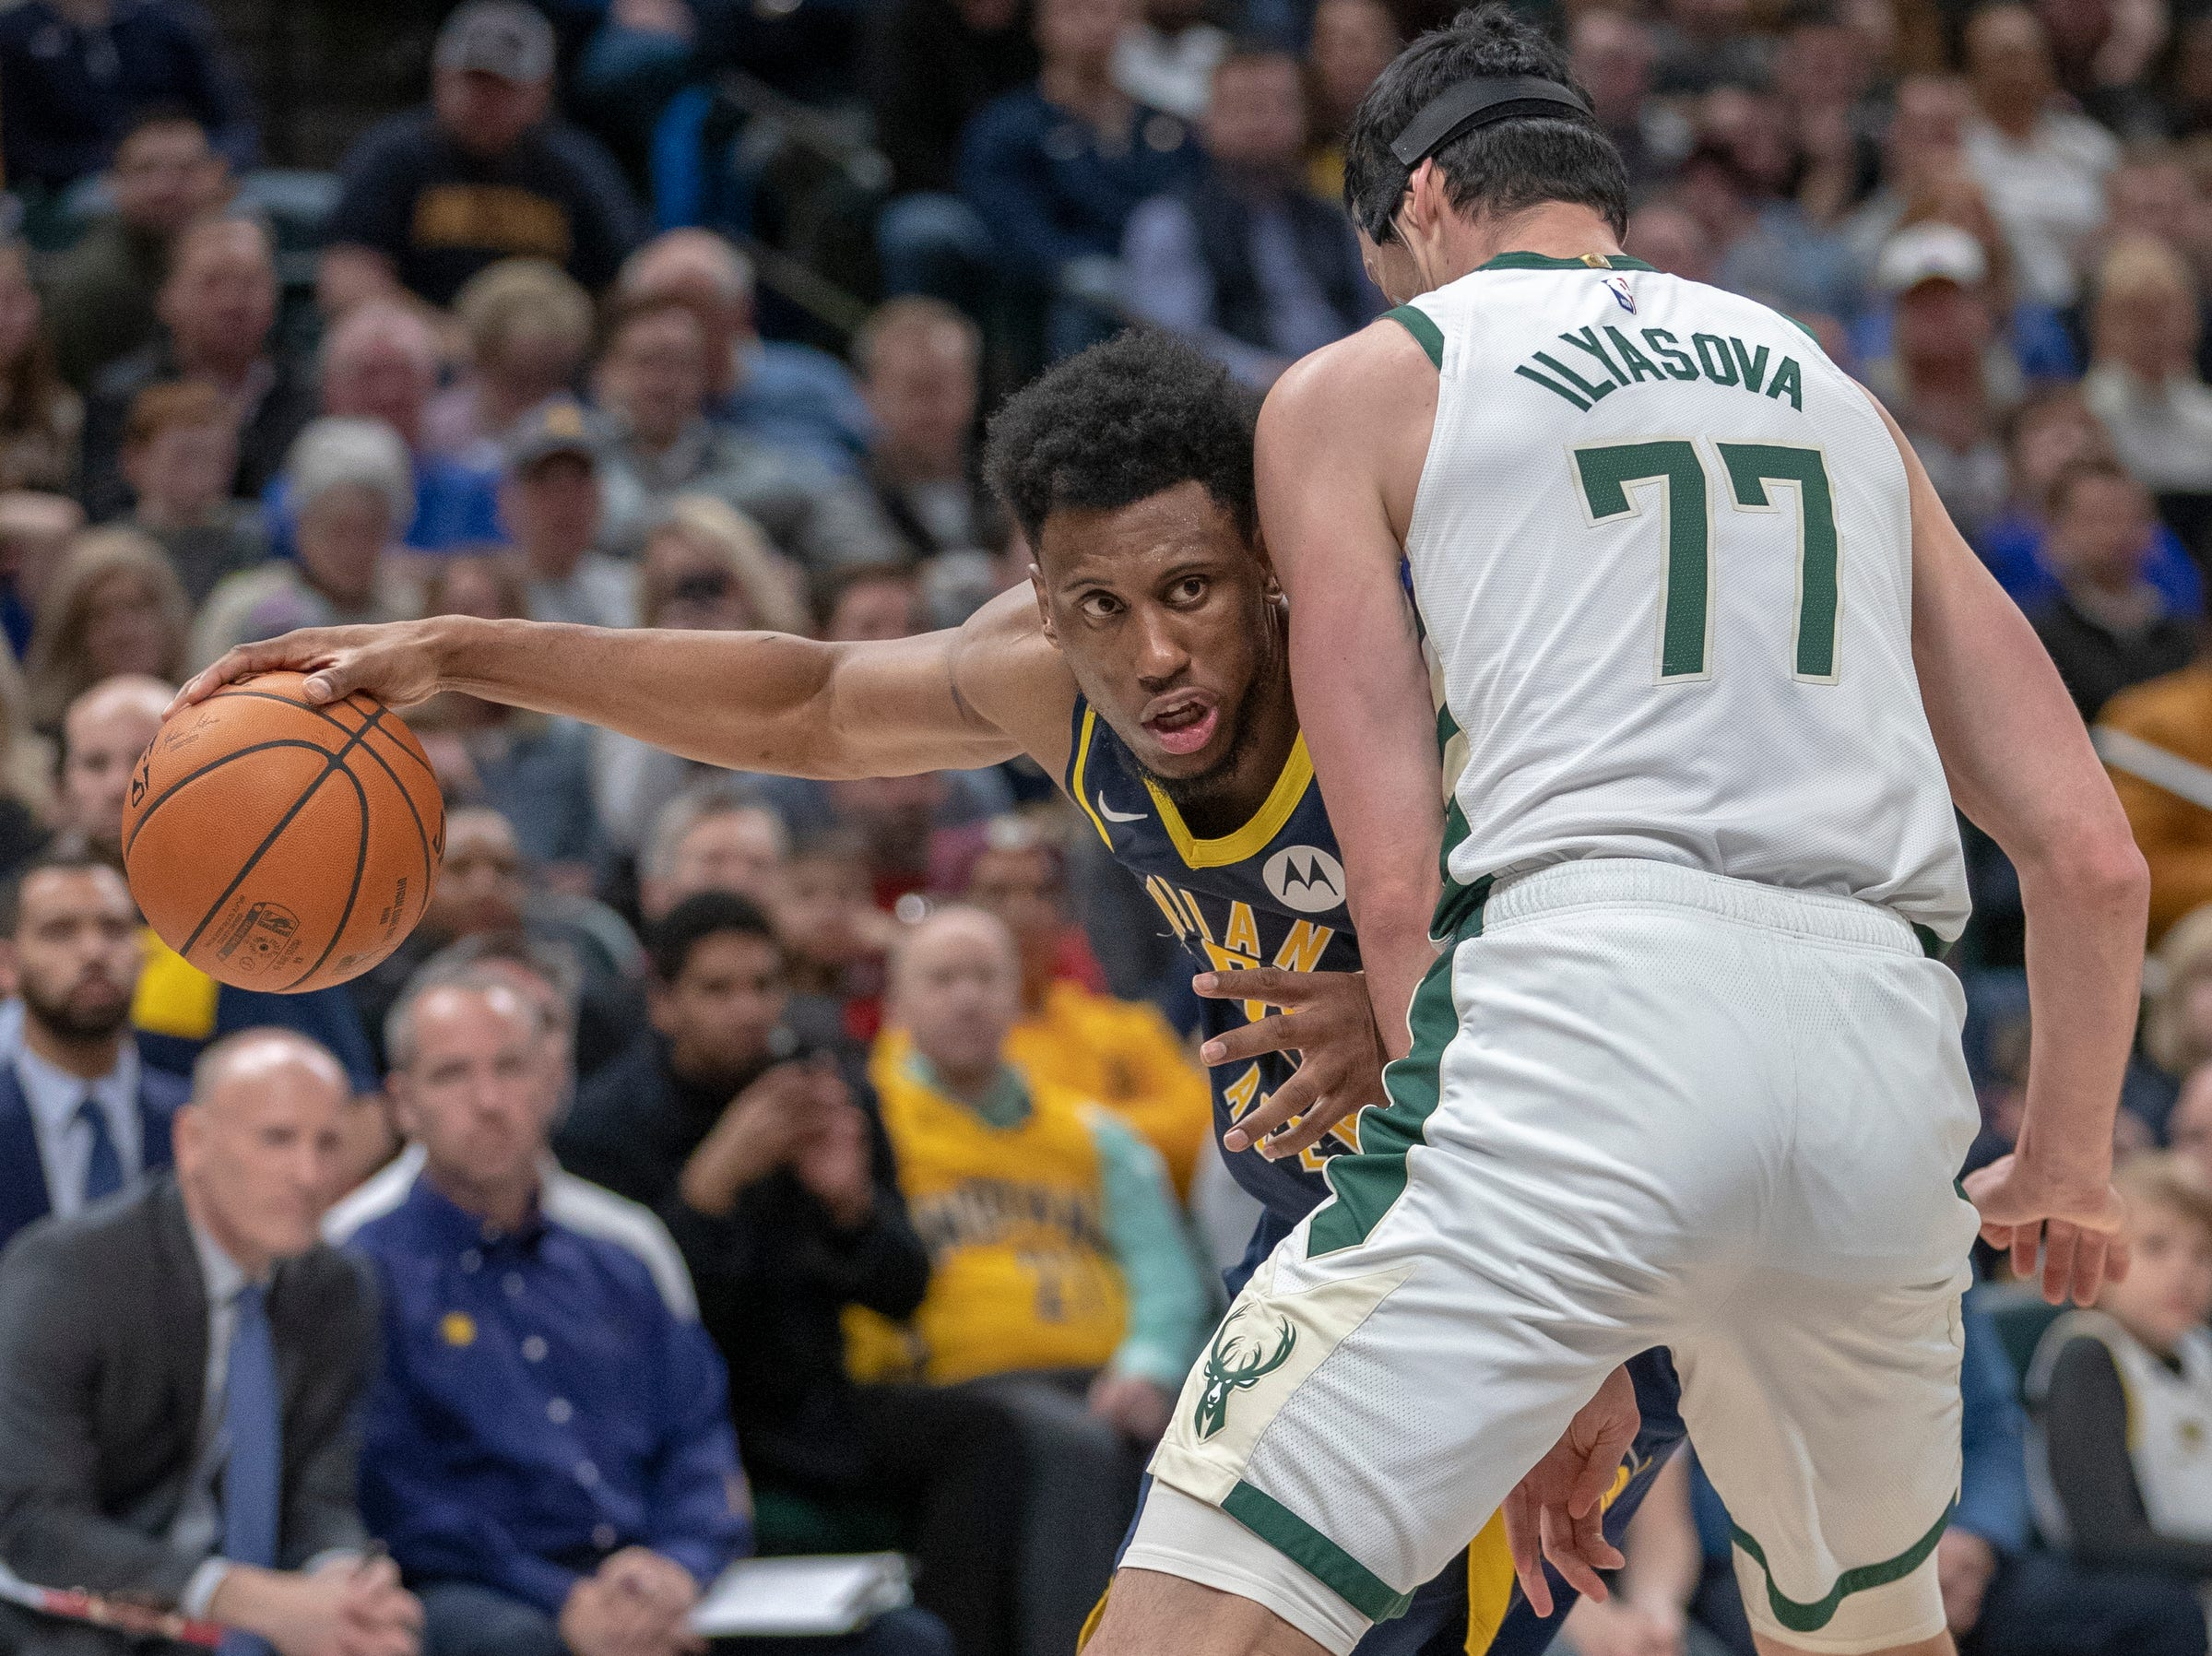 Thaddeus Young of the Indiana Pacers considers his options as he is defended by Ersan Ilyasova of the Milwaukee Bucks, Bankers Life Fieldhouse, Indianapolis, Wednesday, Feb. 13, 2019. Milwaukee won 106-97.